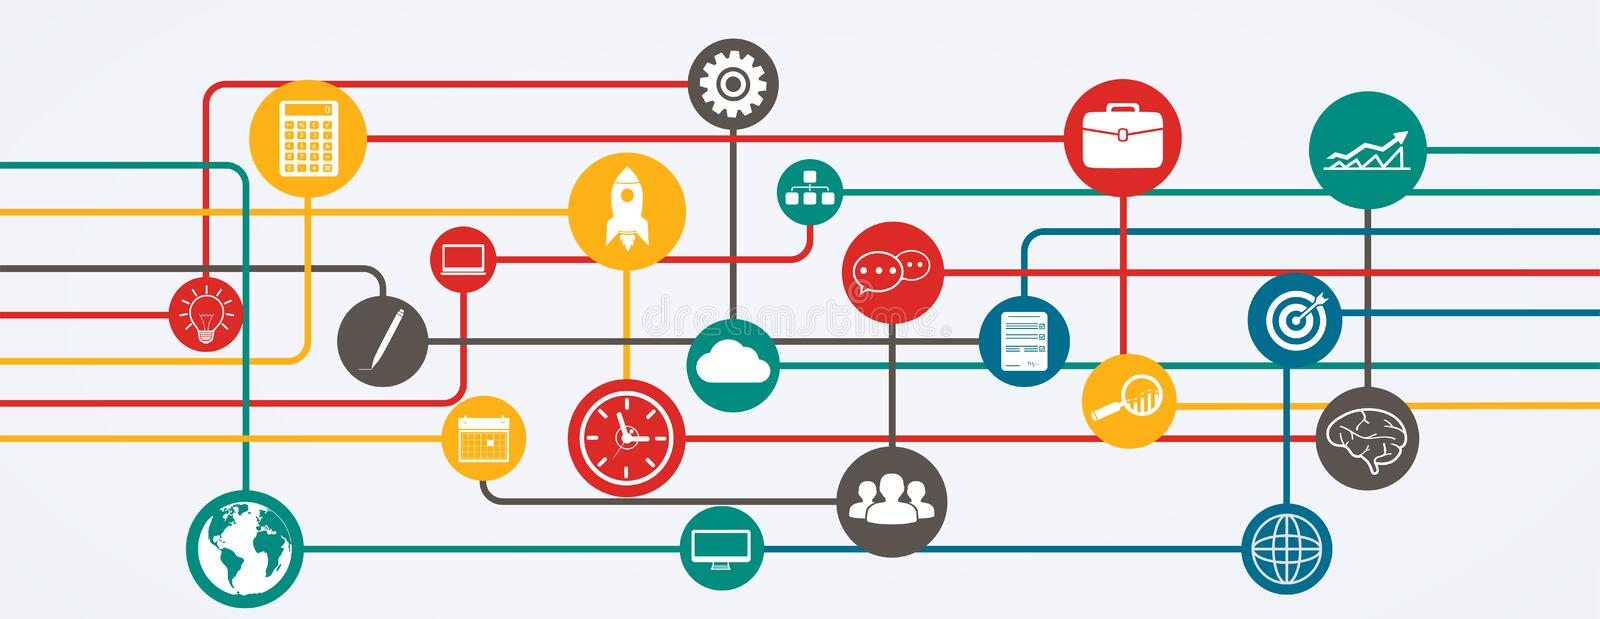 Network connections, information flow with icons in horizontal position. Illustration royalty free illustration